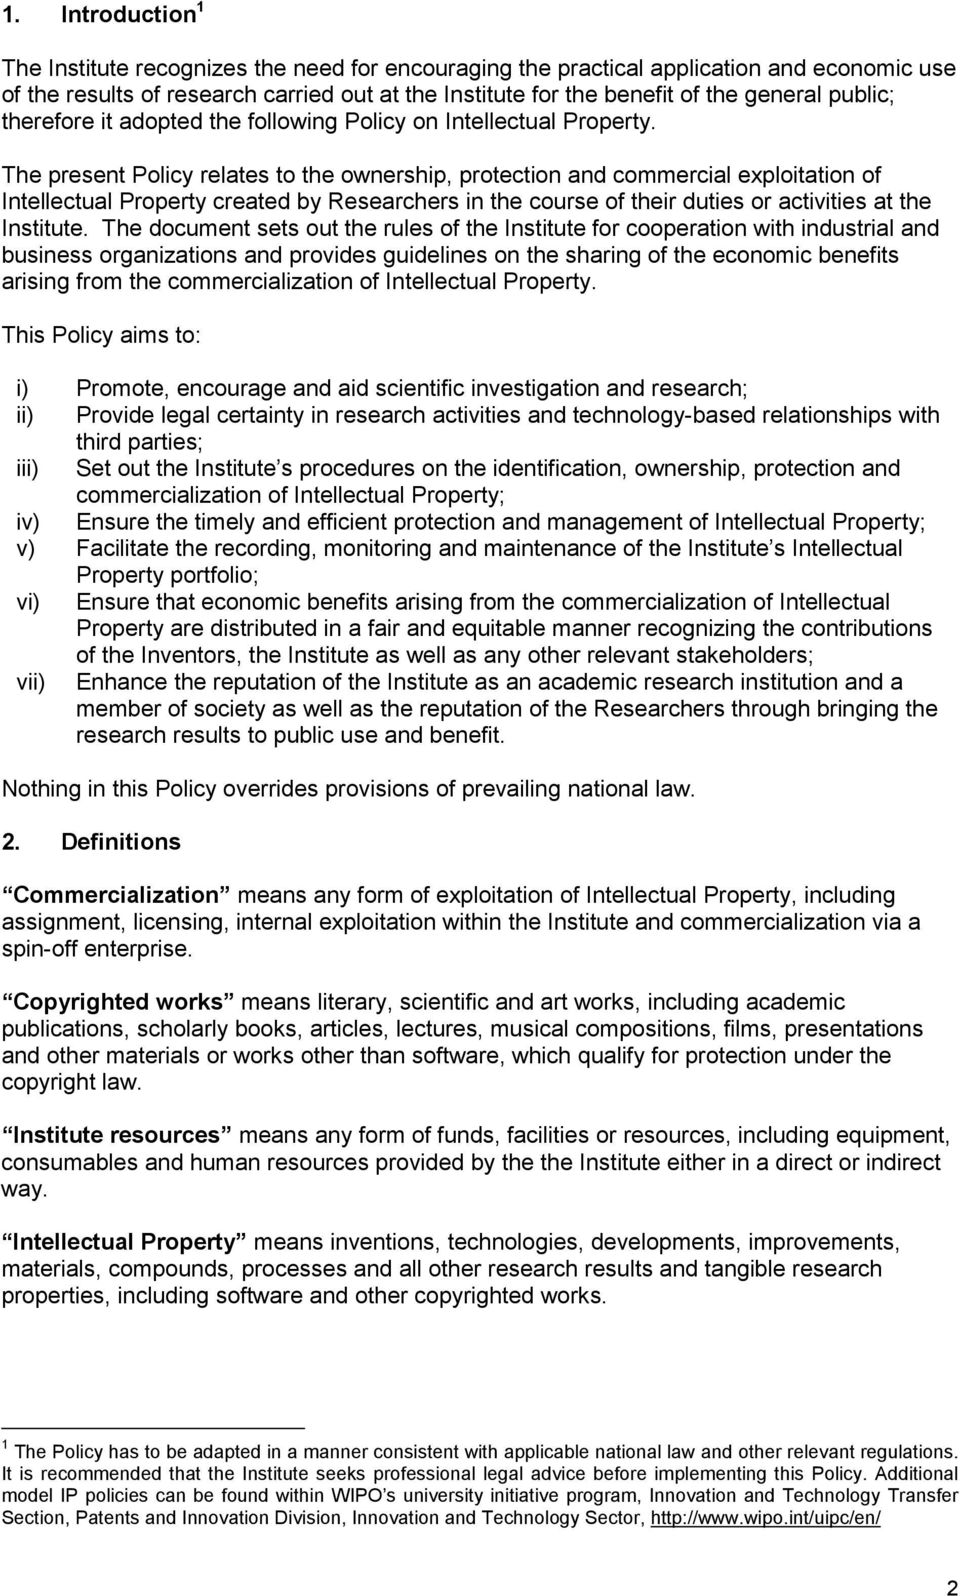 The present Policy relates to the ownership, protection and commercial exploitation of Intellectual Property created by Researchers in the course of their duties or activities at the Institute.